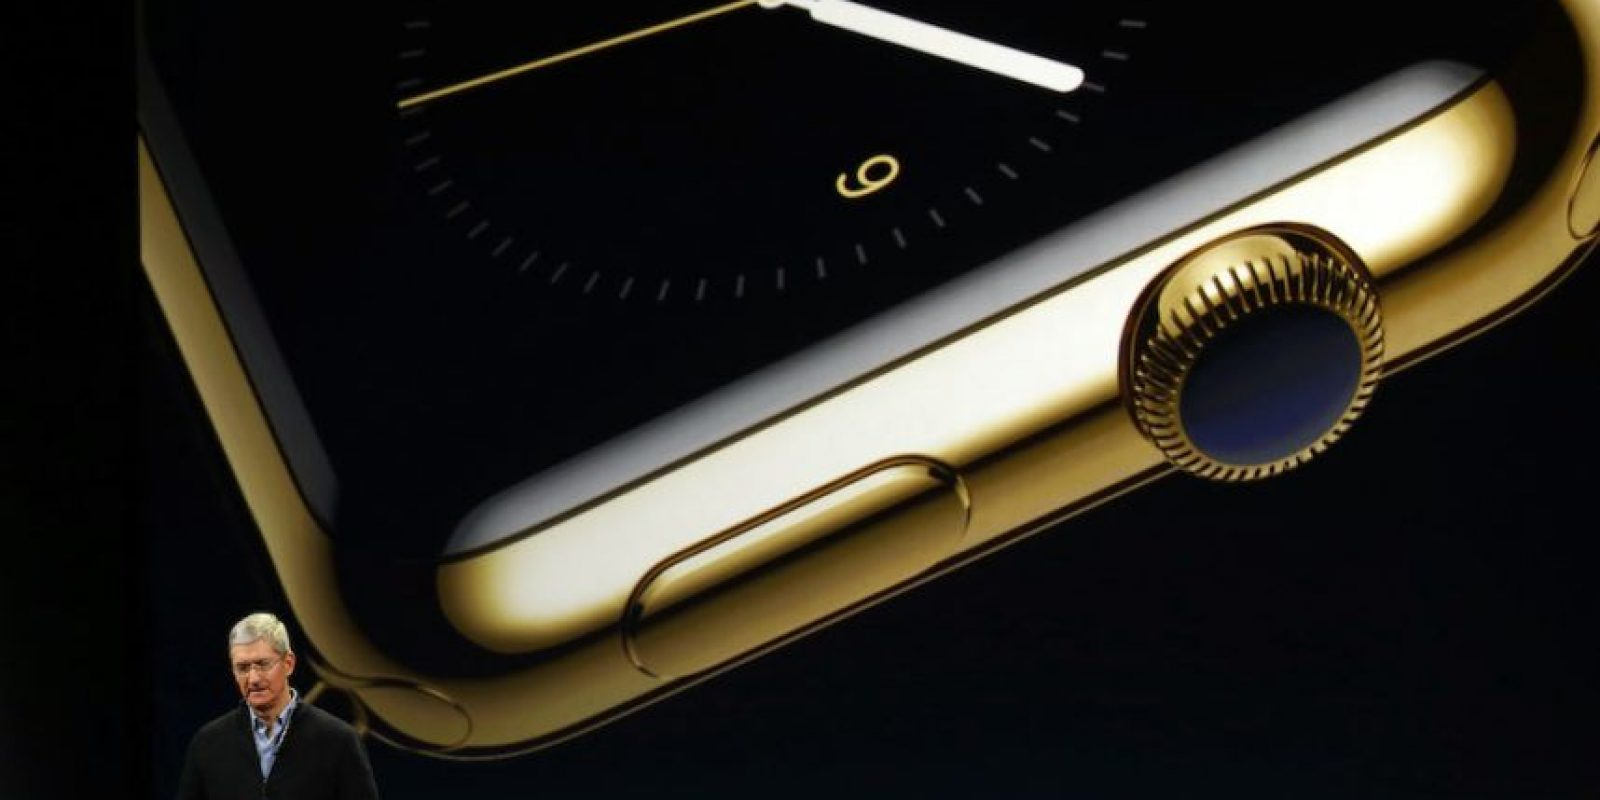 Apple Watch Edition se vendes desde 10 mil dólares. Foto: Getty Images